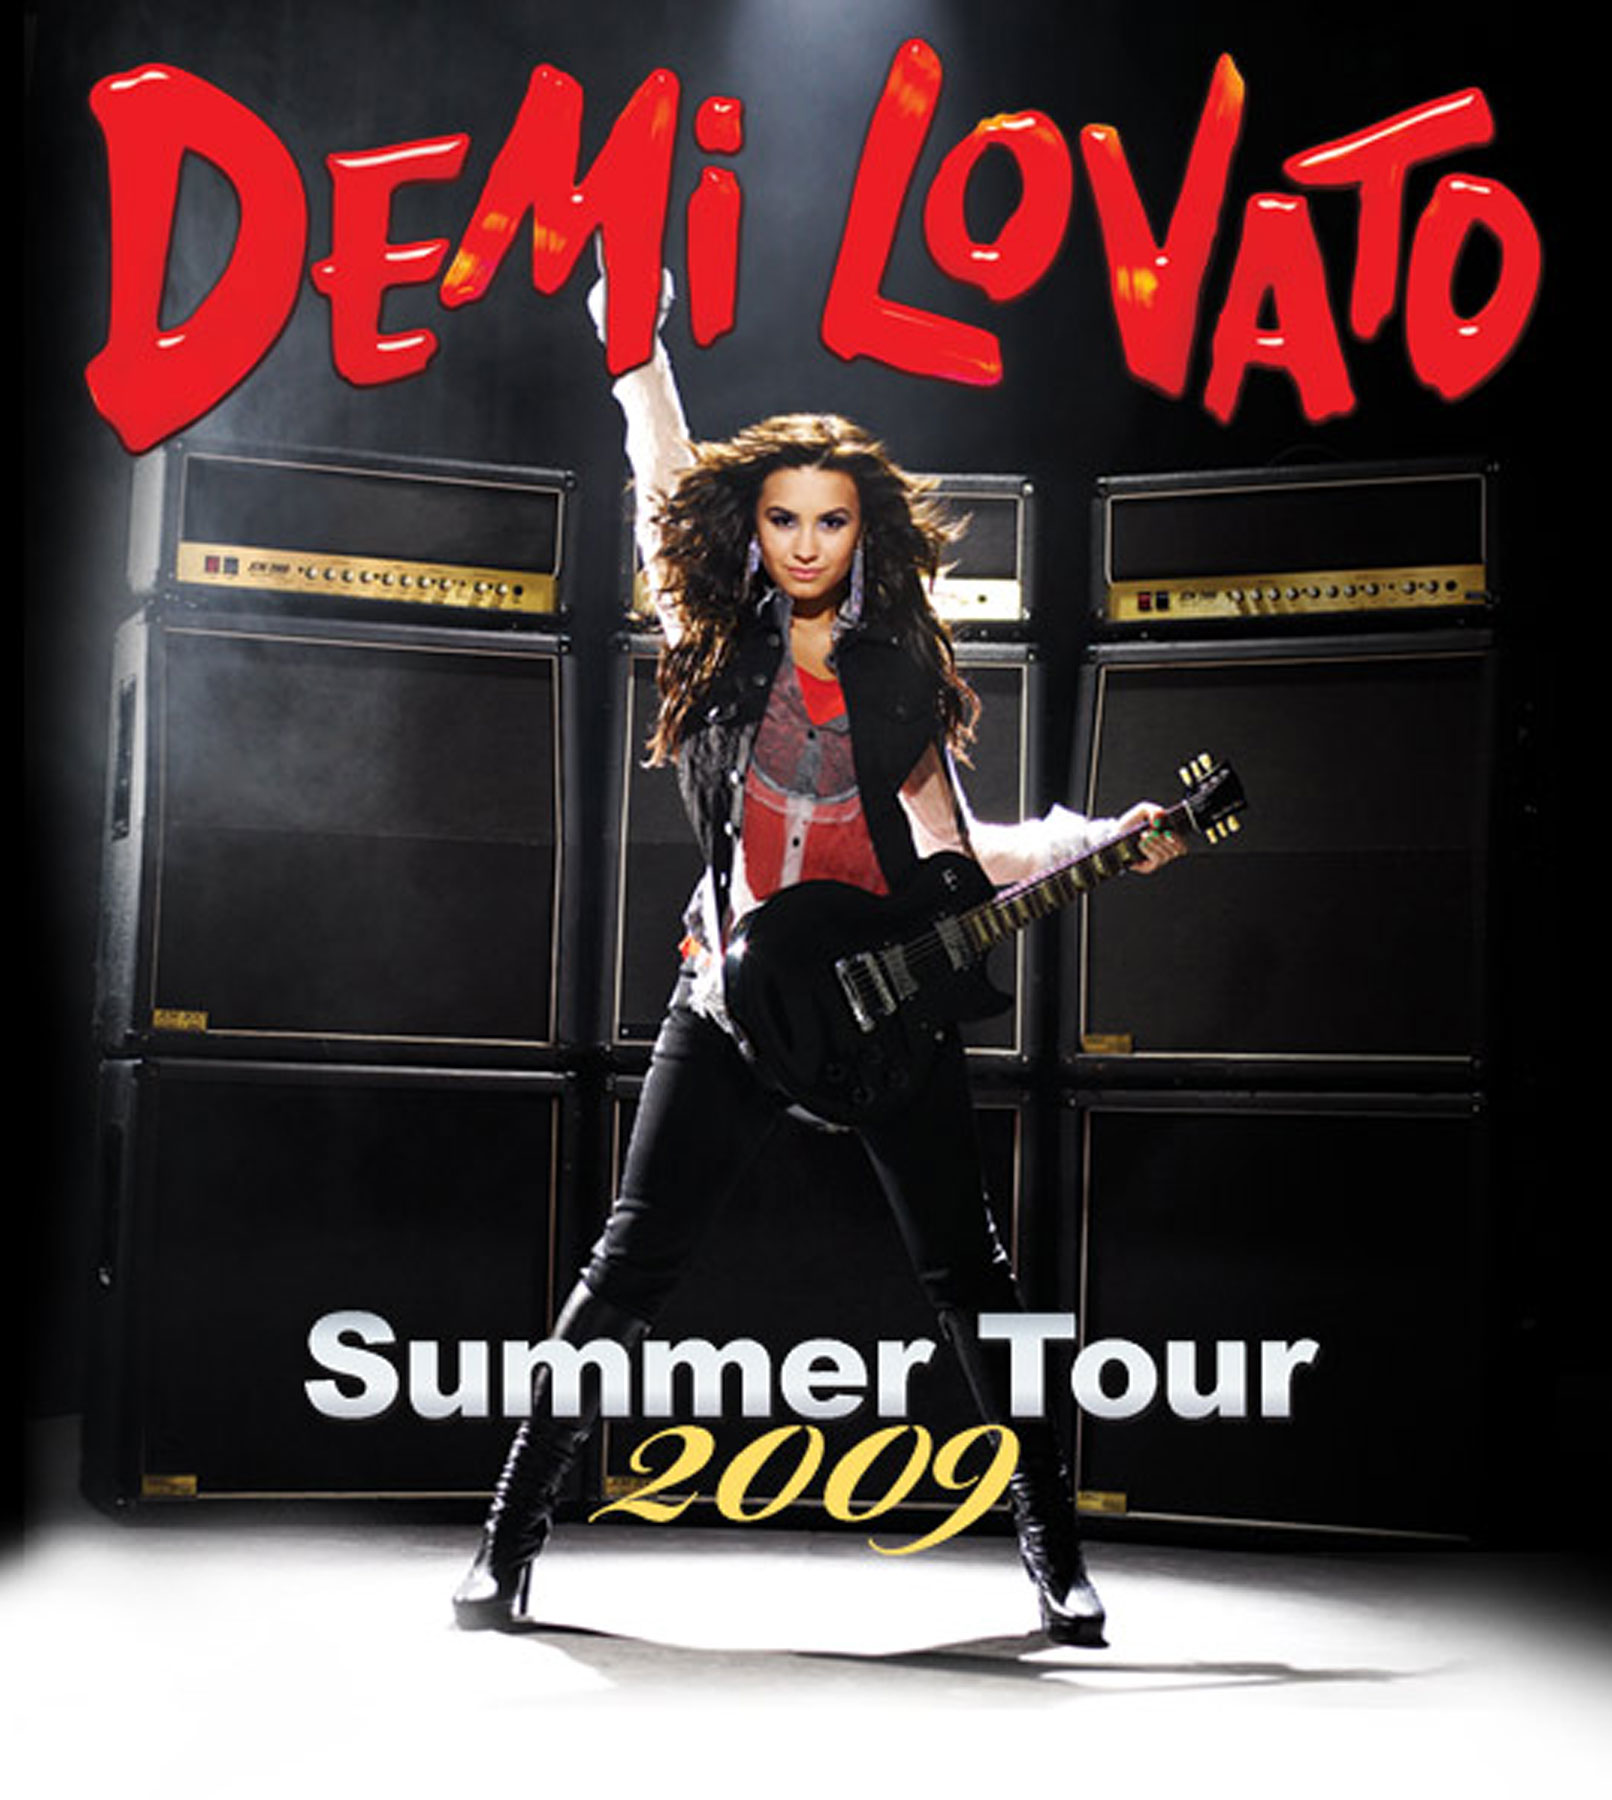 Enter Buzznet's Demi Lovato Contest To Win Tour Tickets And Become An Official Blogger!